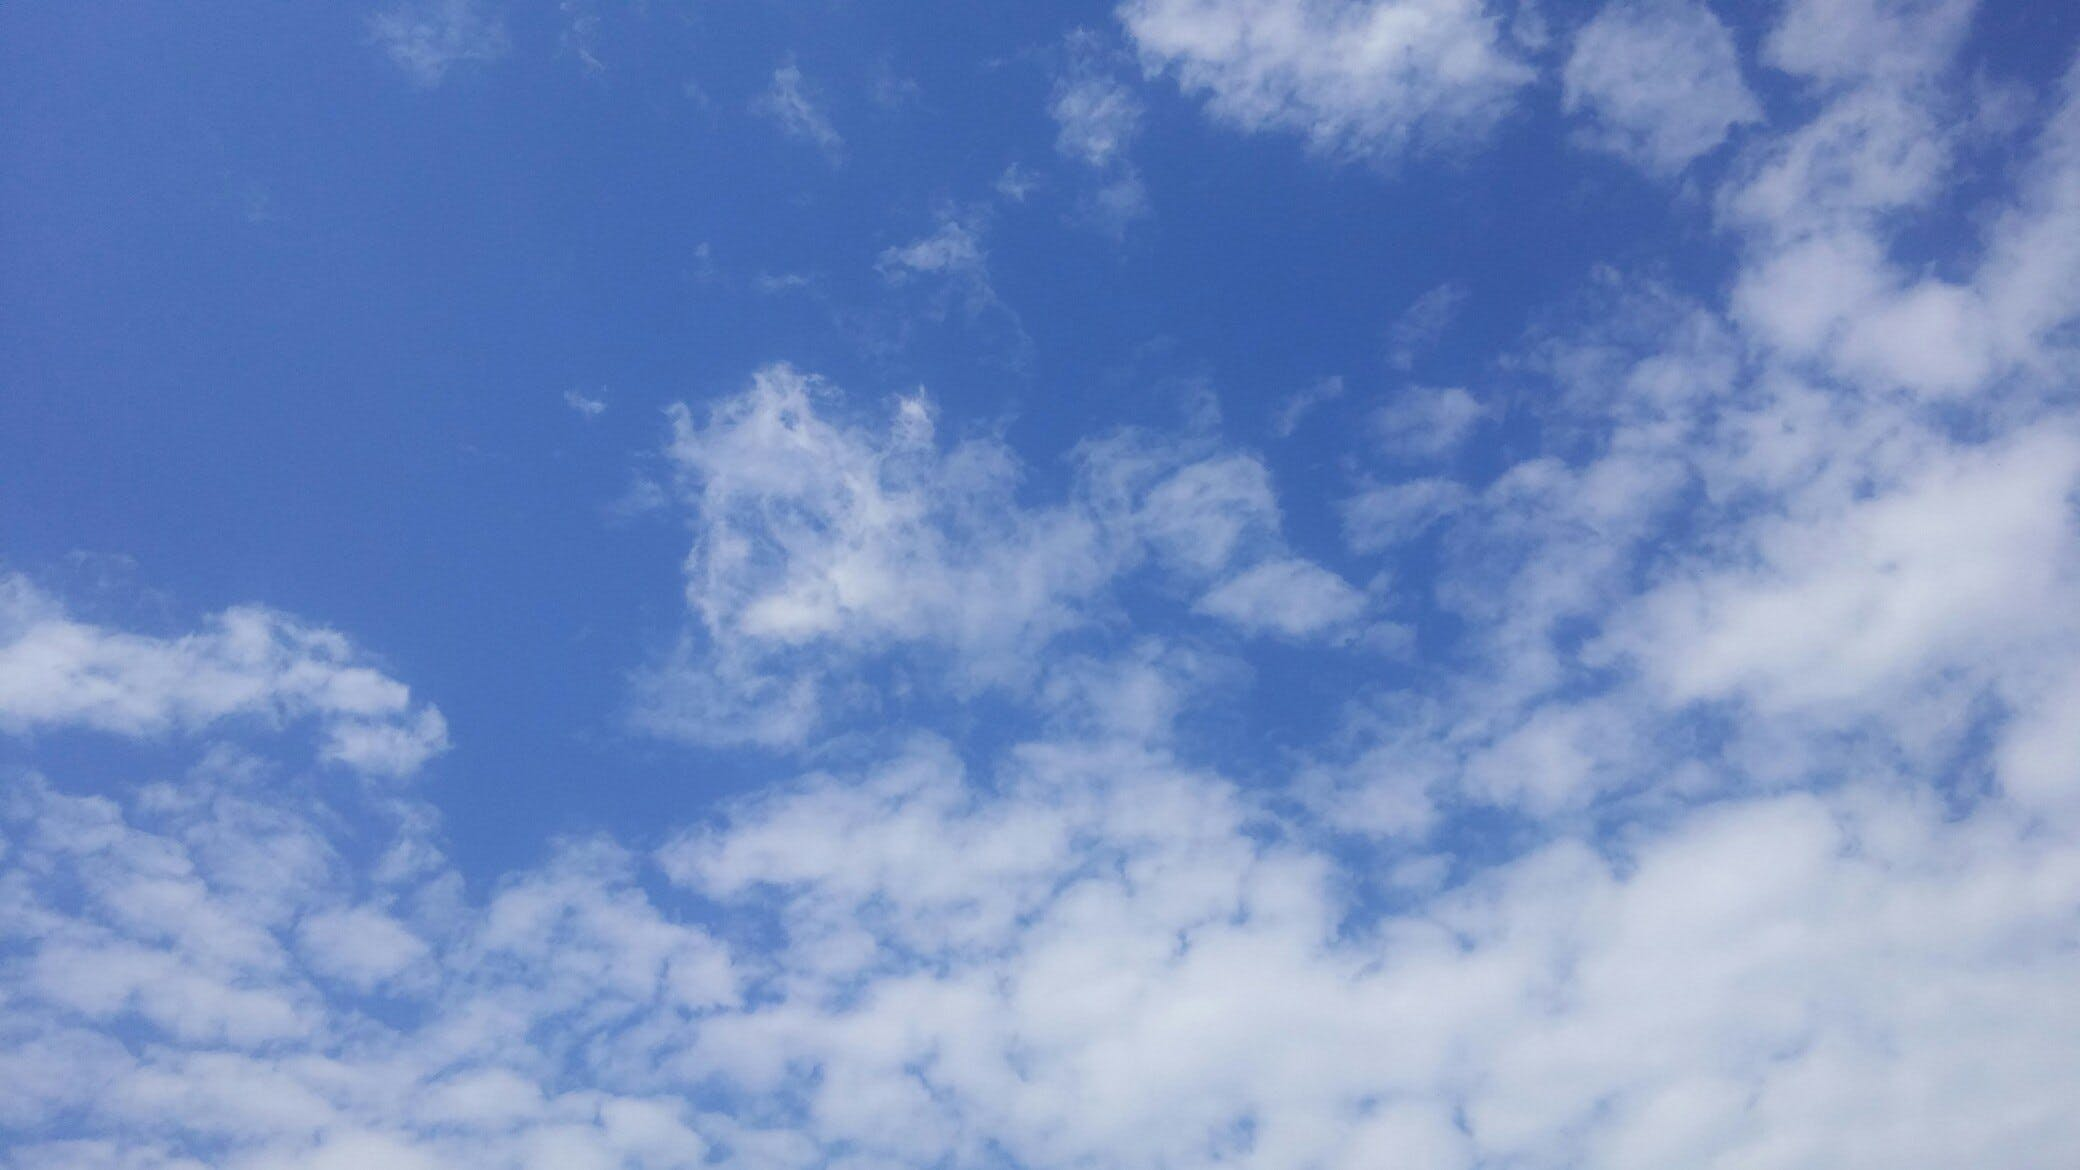 Free stock photo of clouds, sky